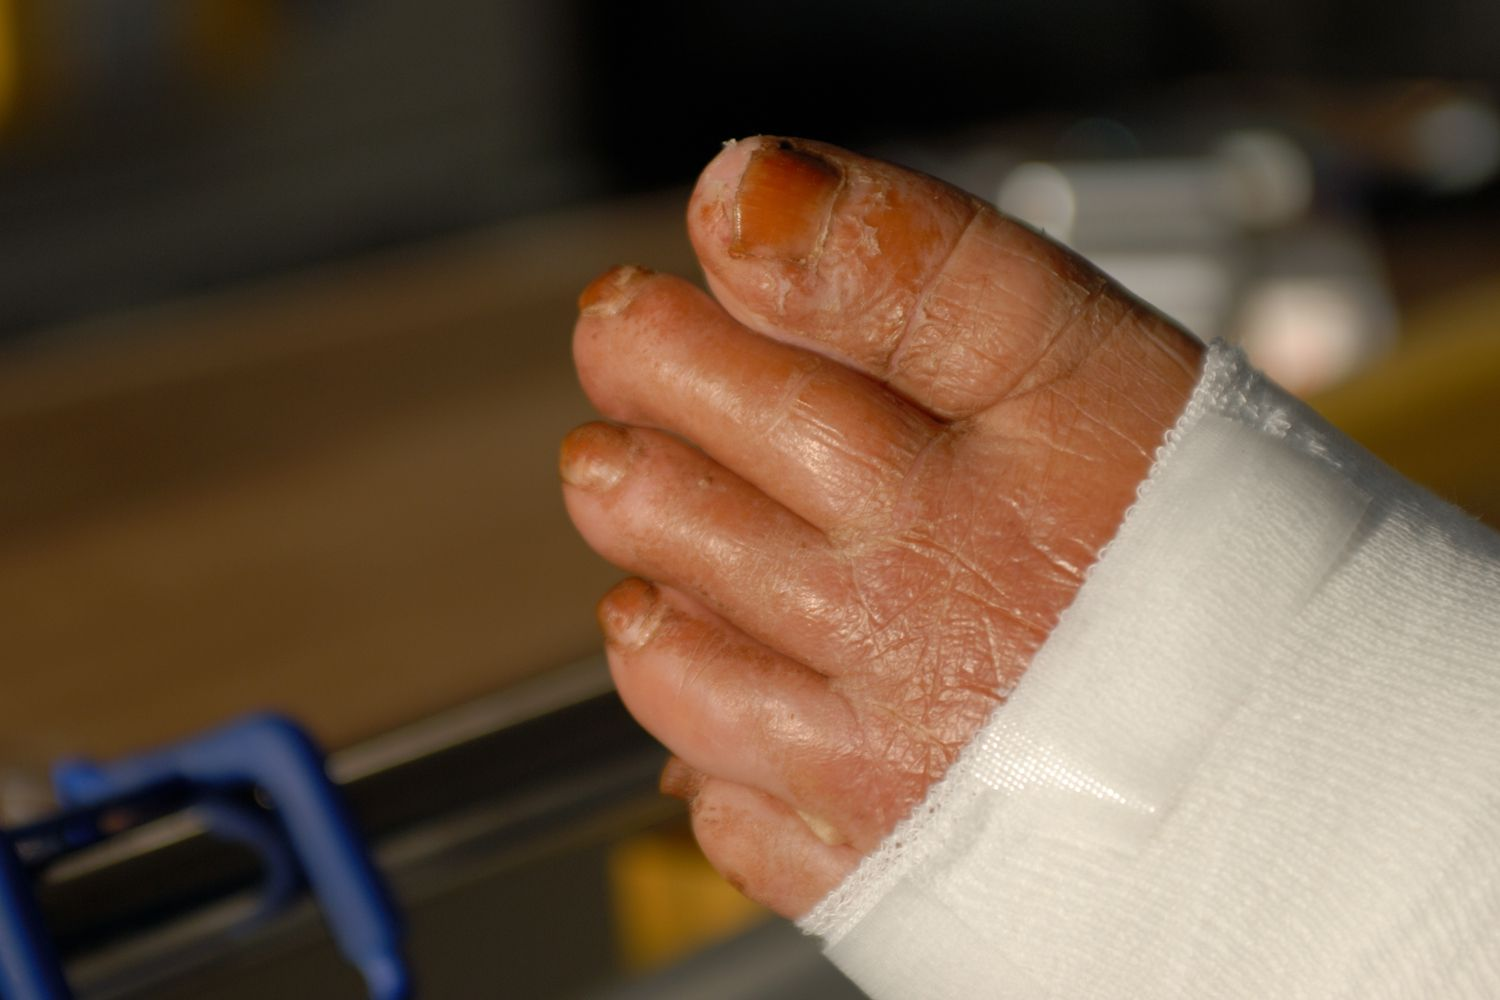 Common Bacterial Skin Infections That Cause Rashes